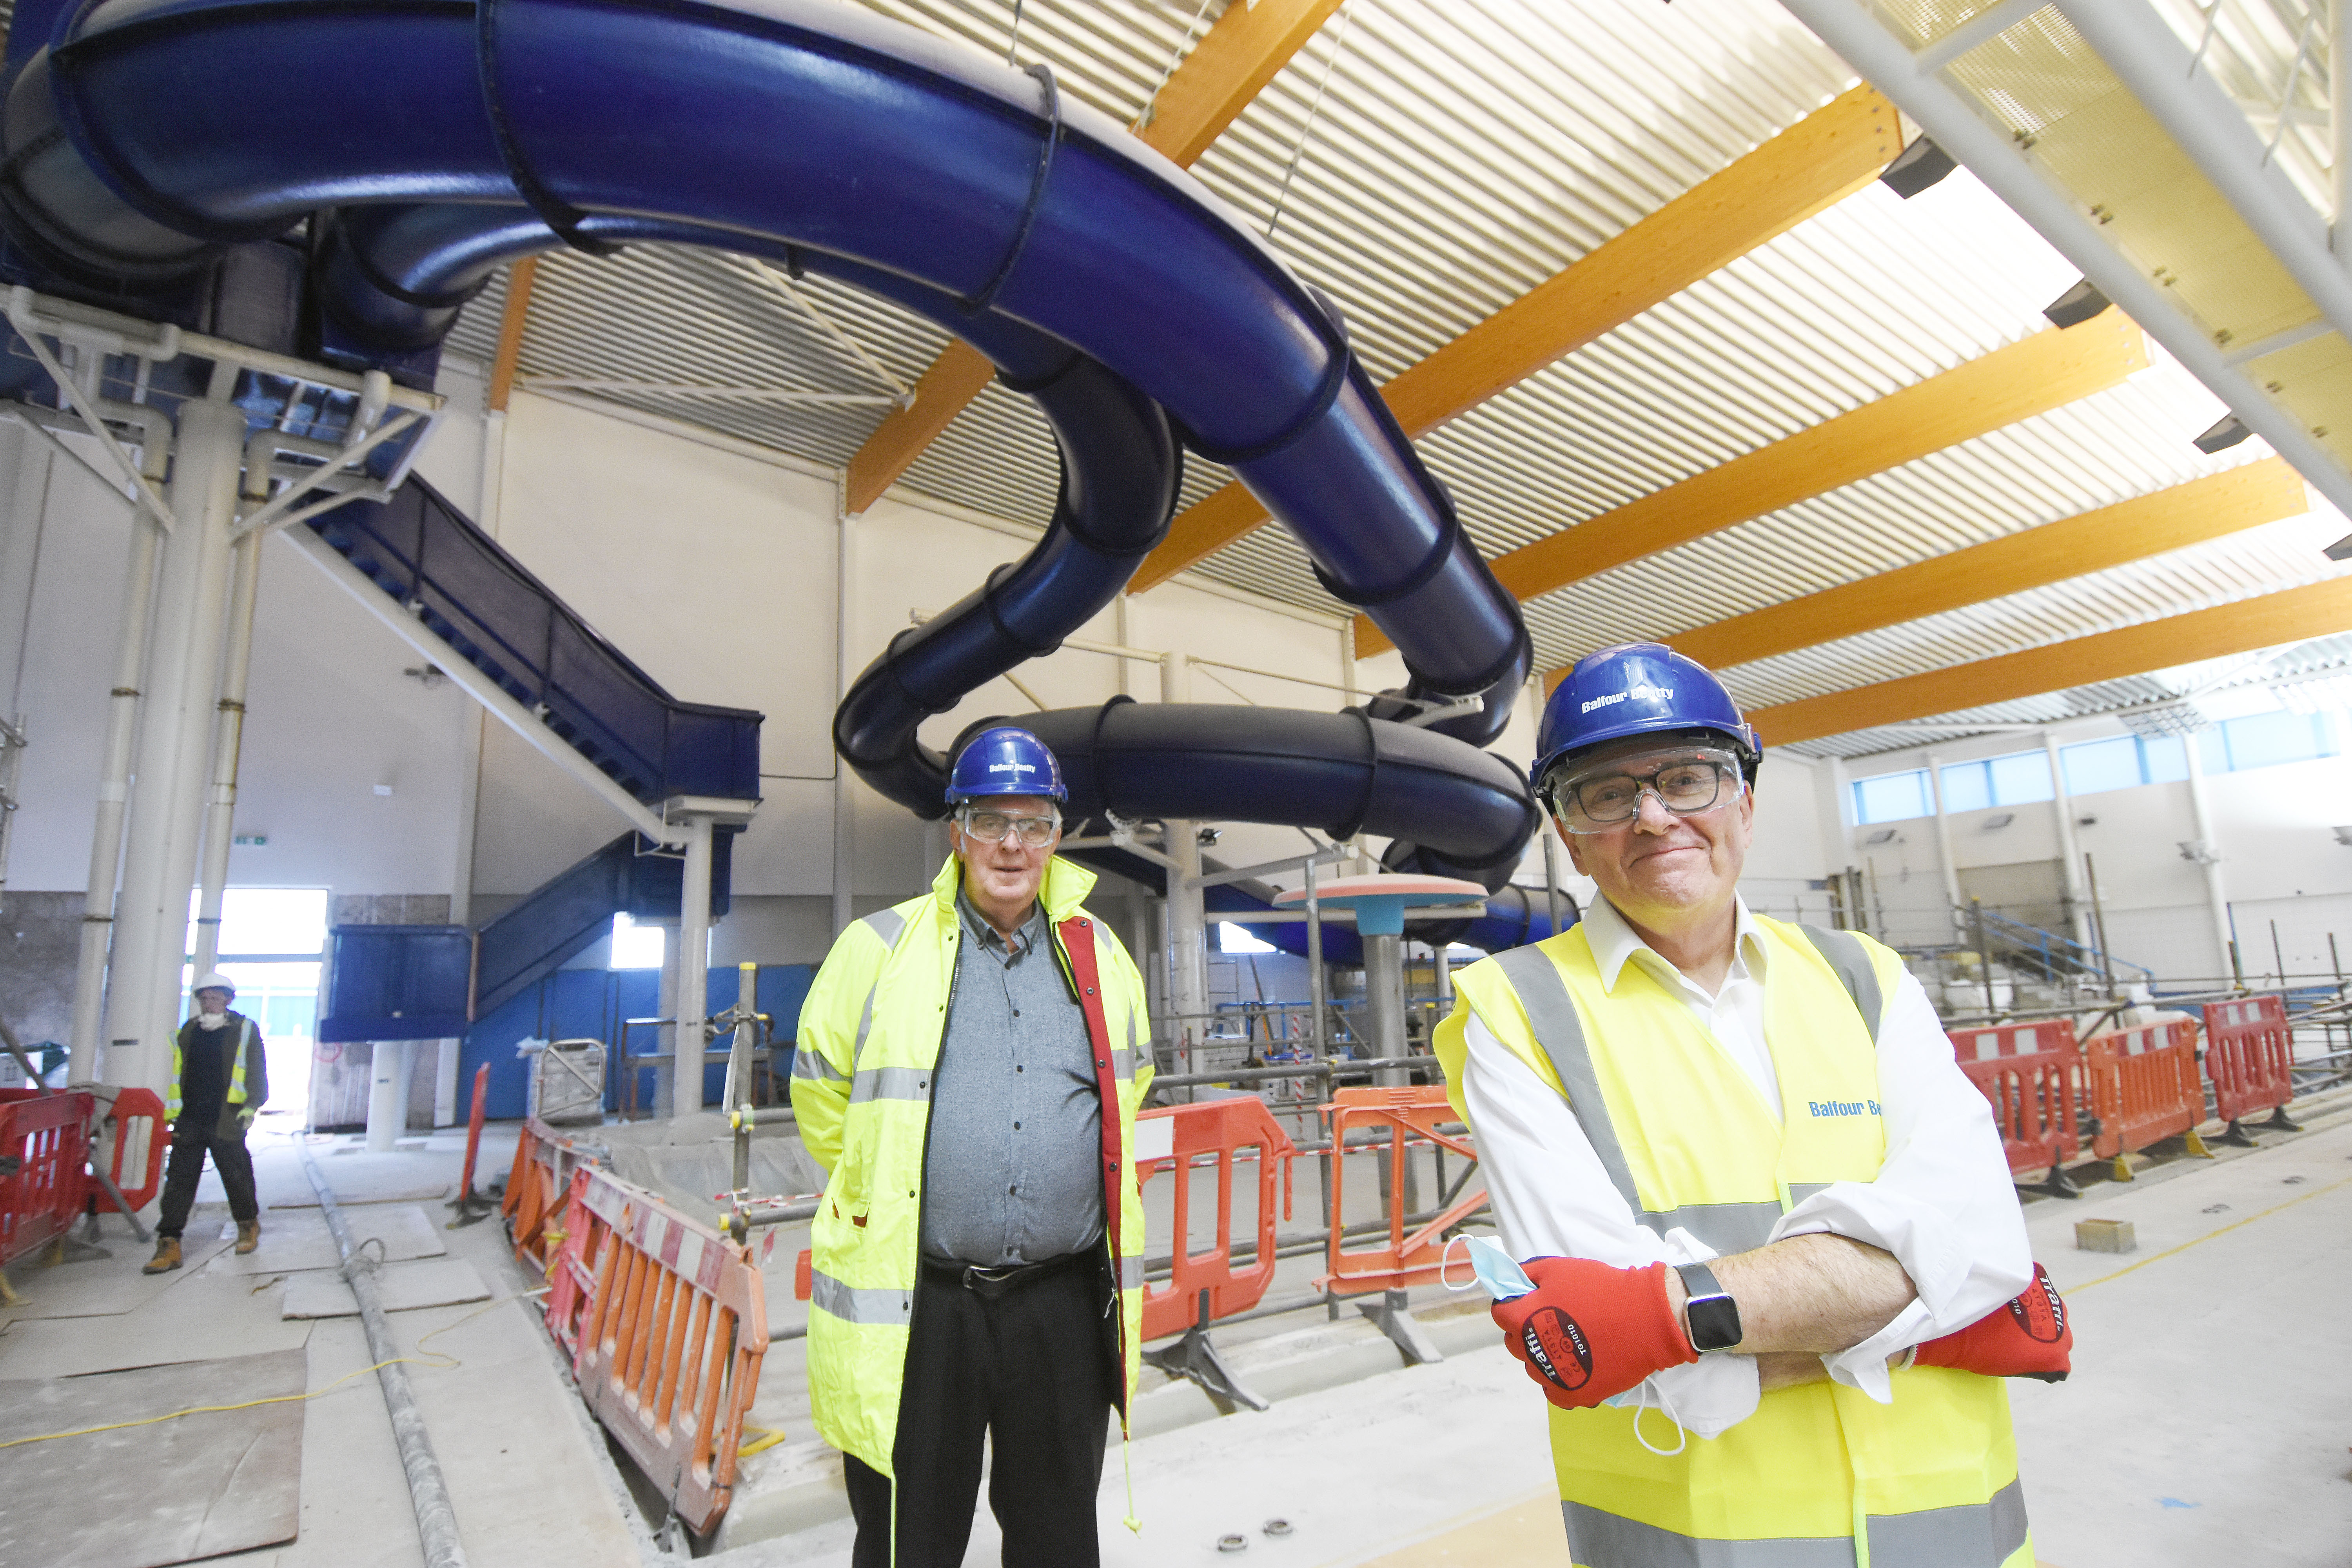 Councillor Tudor Evans and Pete Smith inside the Life Centre in front of the slide